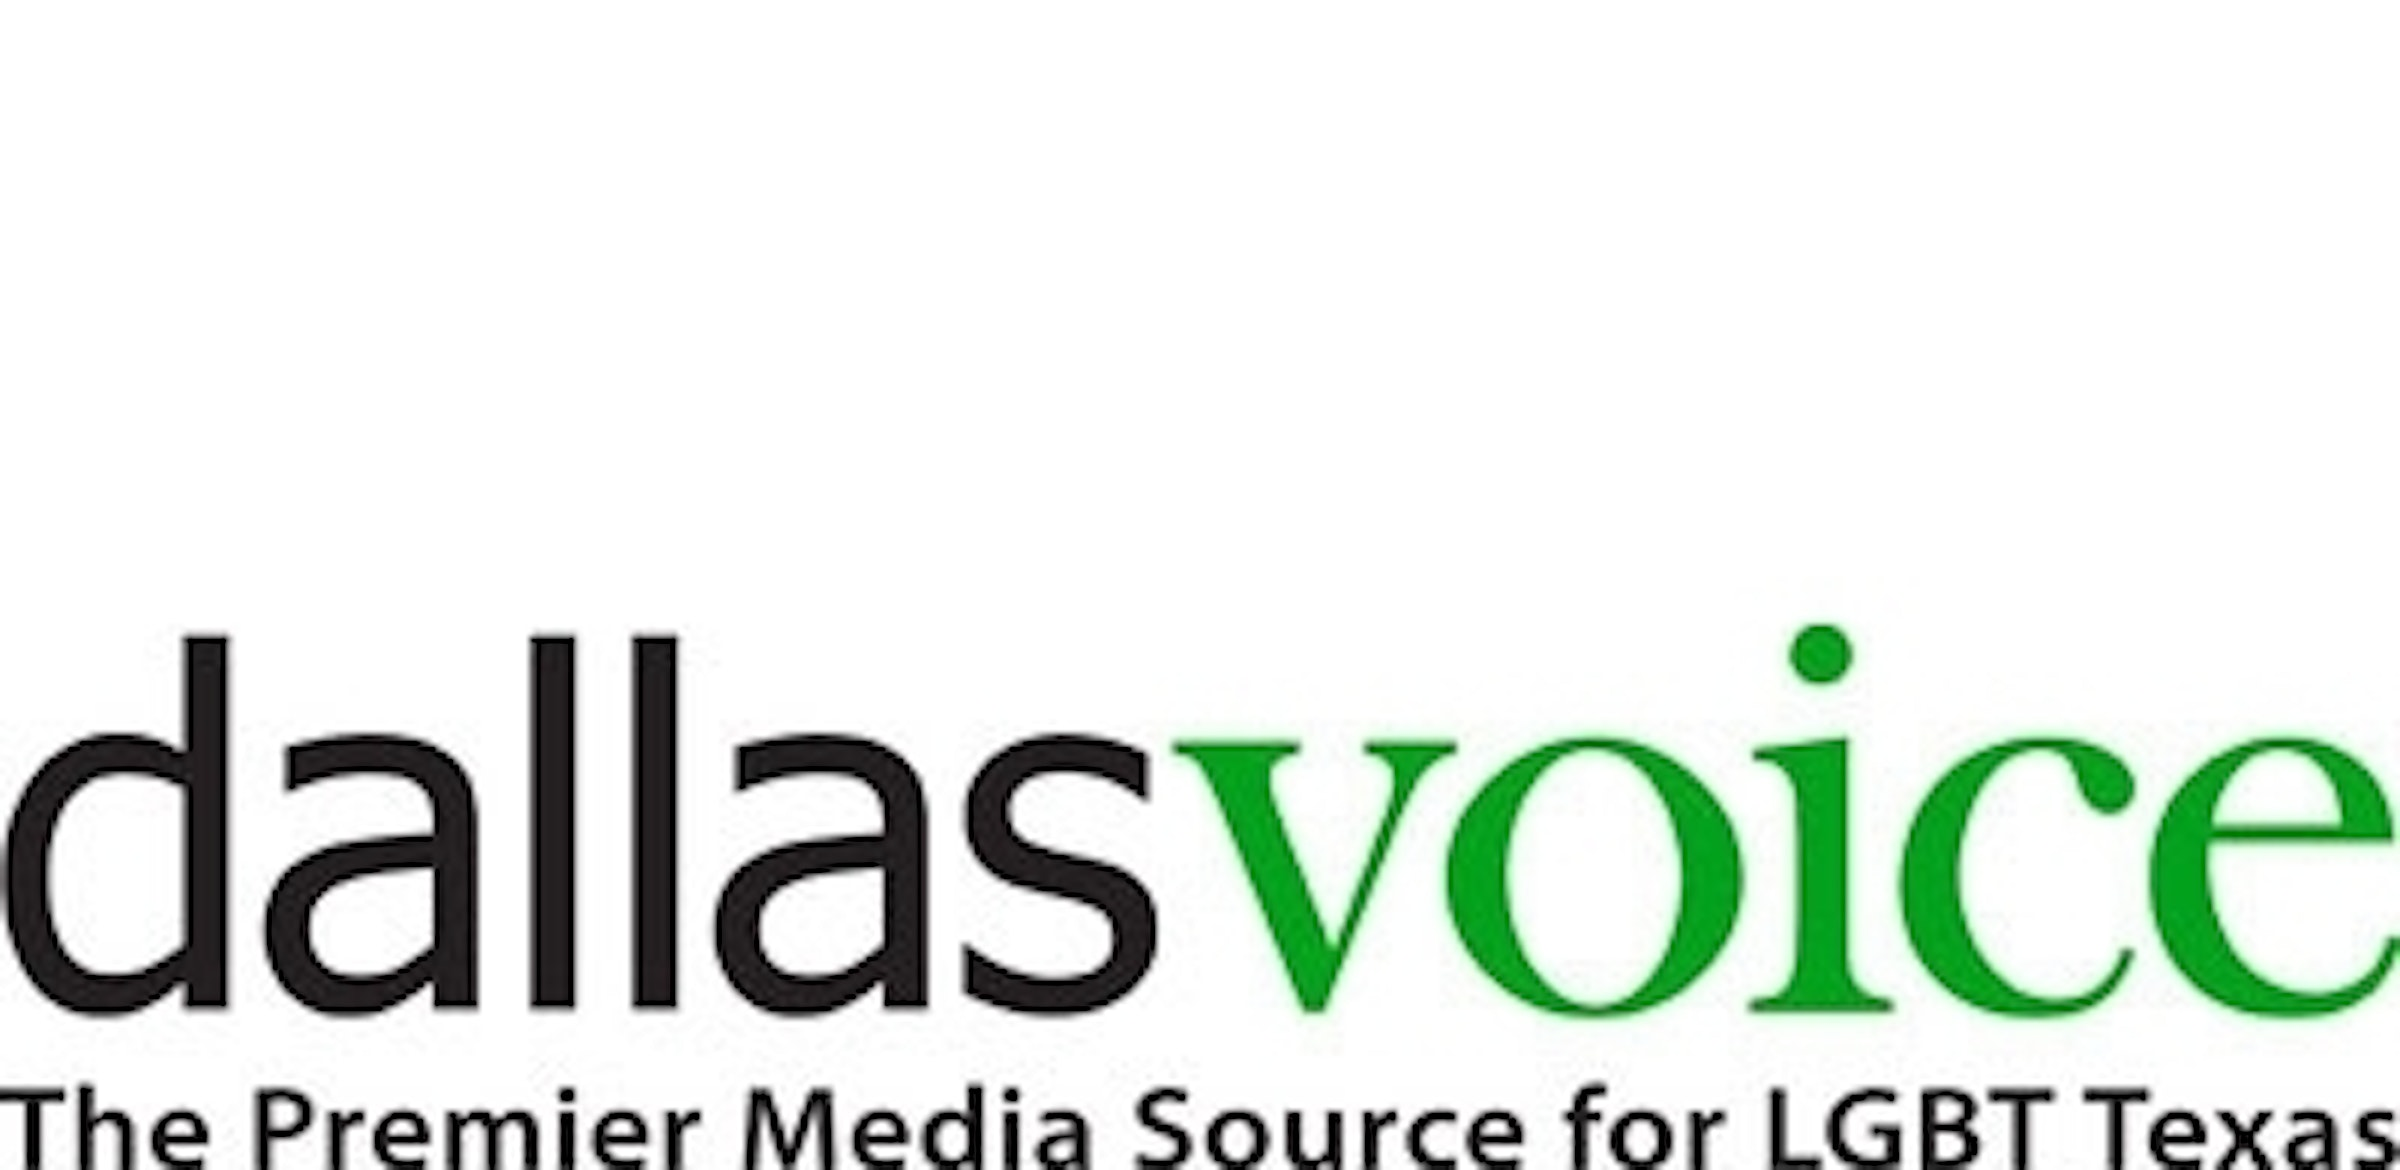 Voice Publishing Company, Inc. in Beyond Dallas